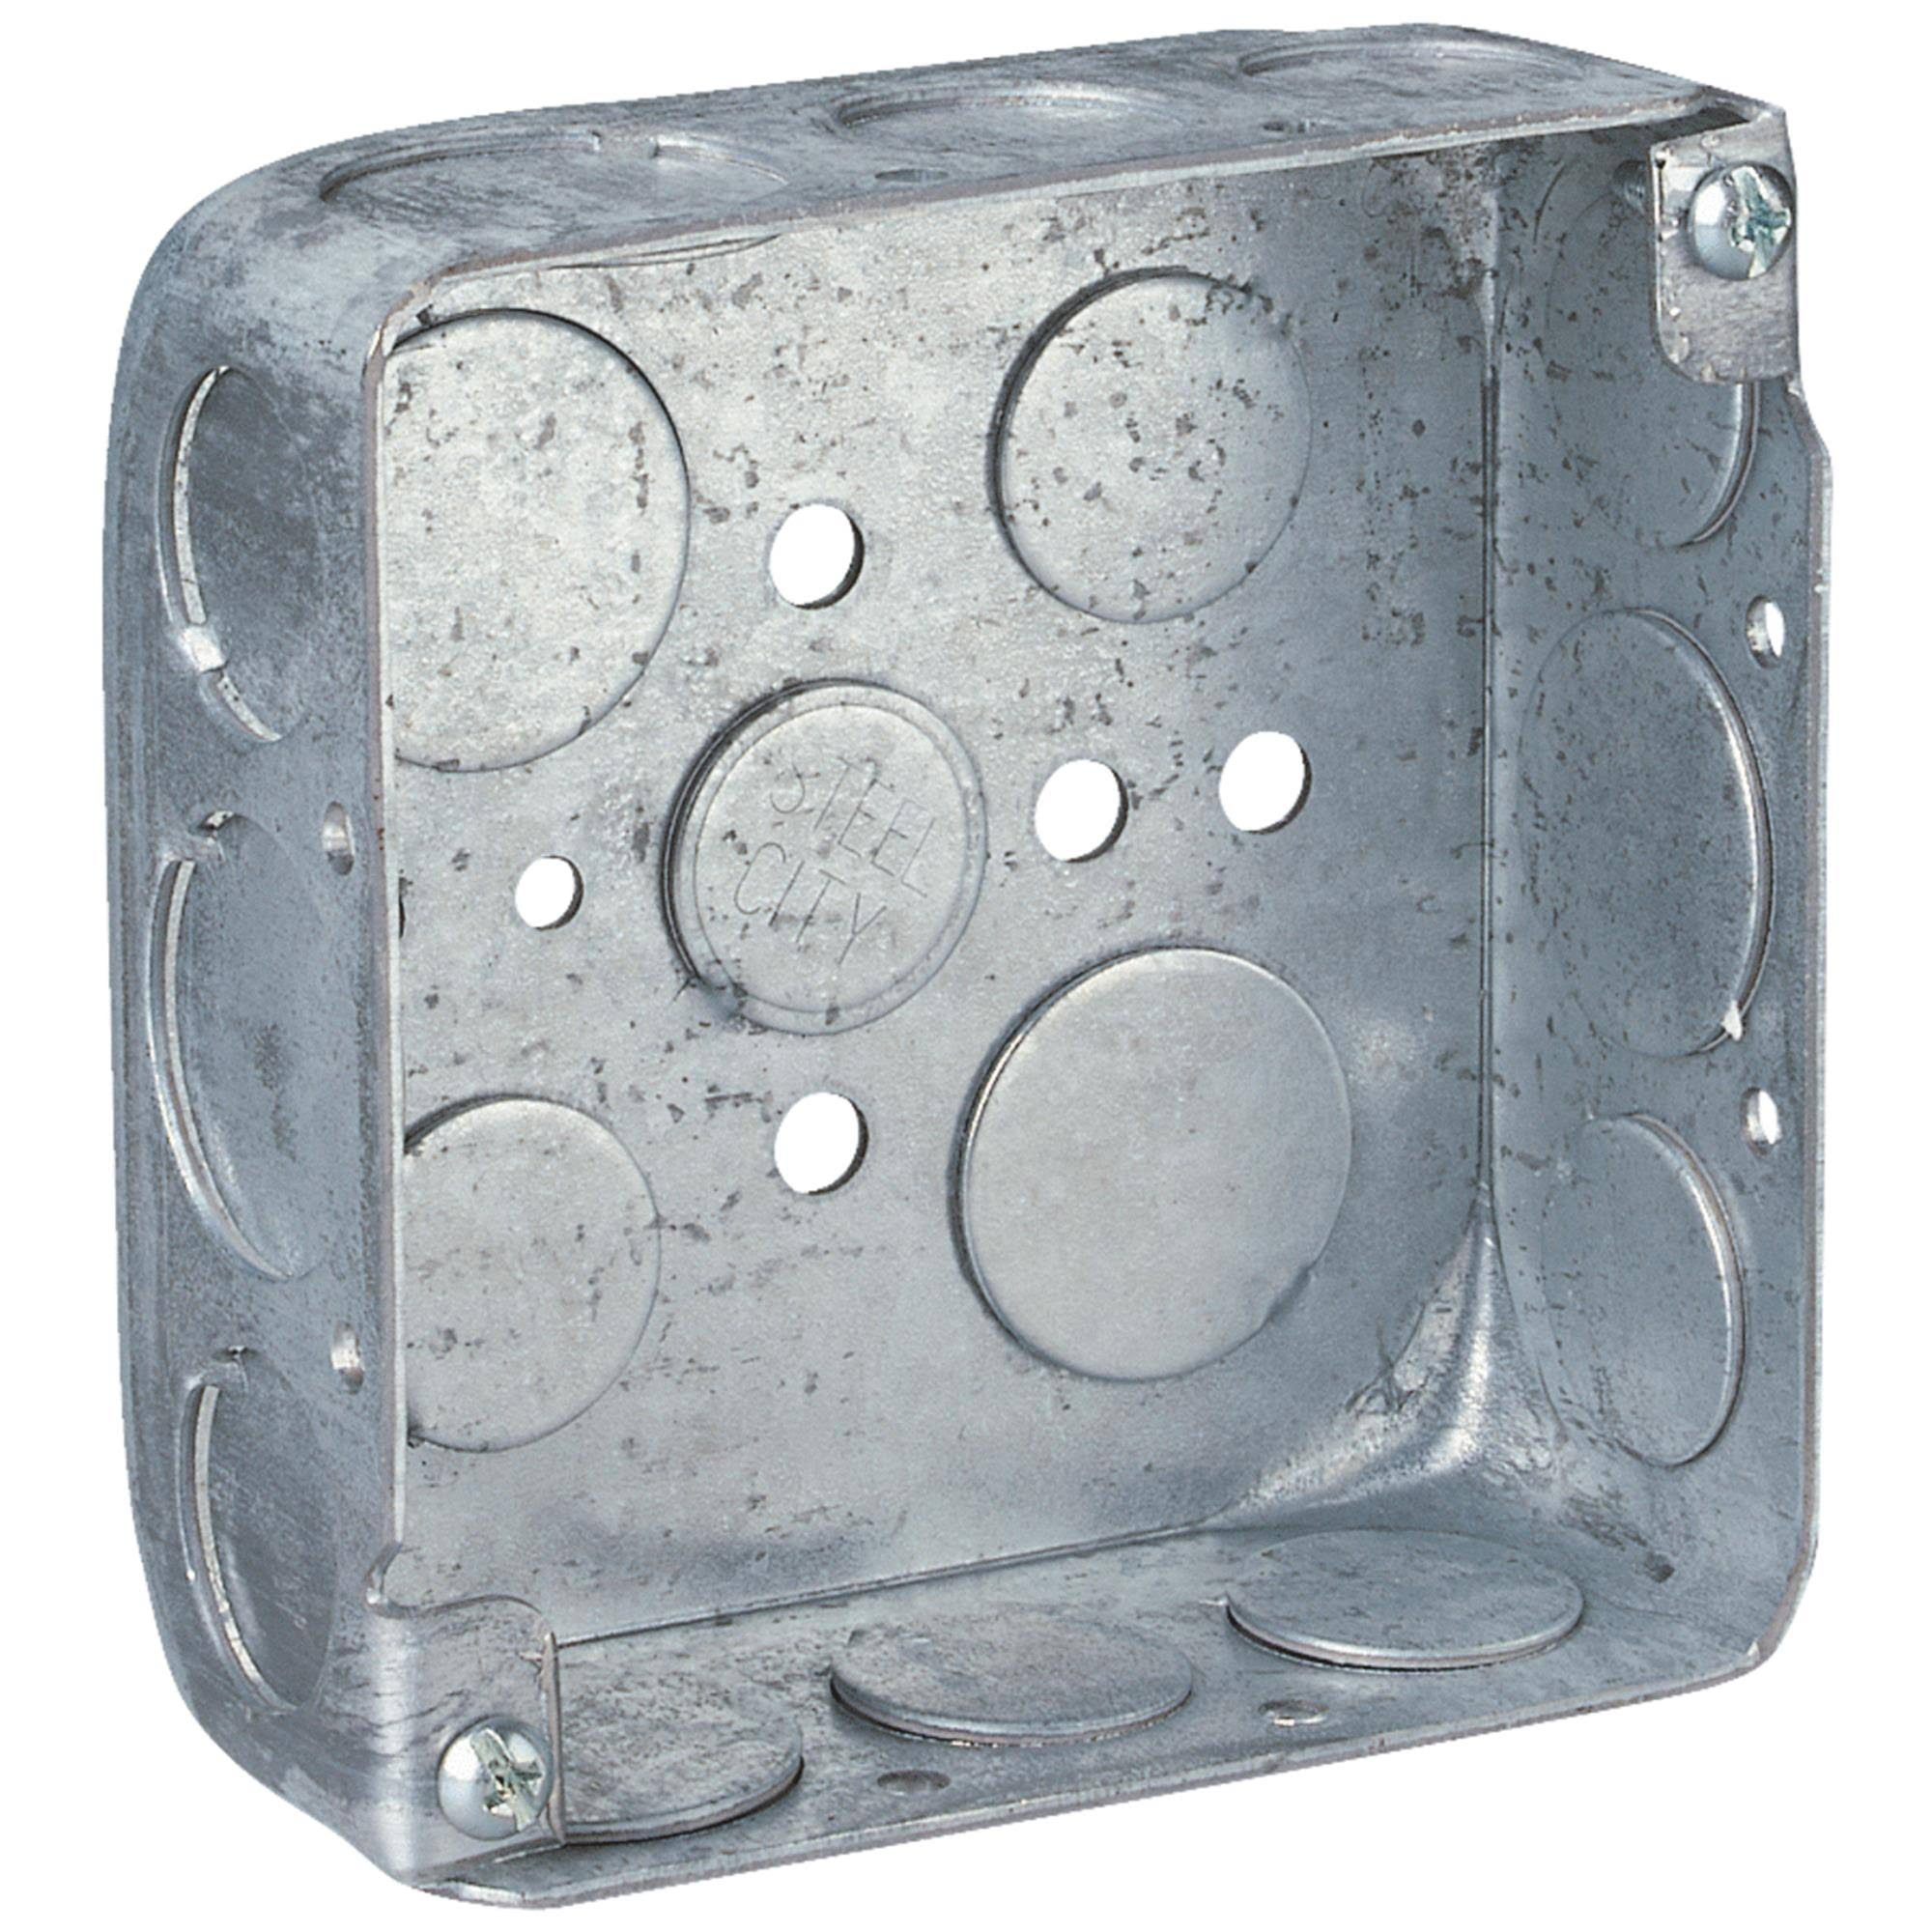 Steel City 2-Gang Square Wall Box - 21 cu. in